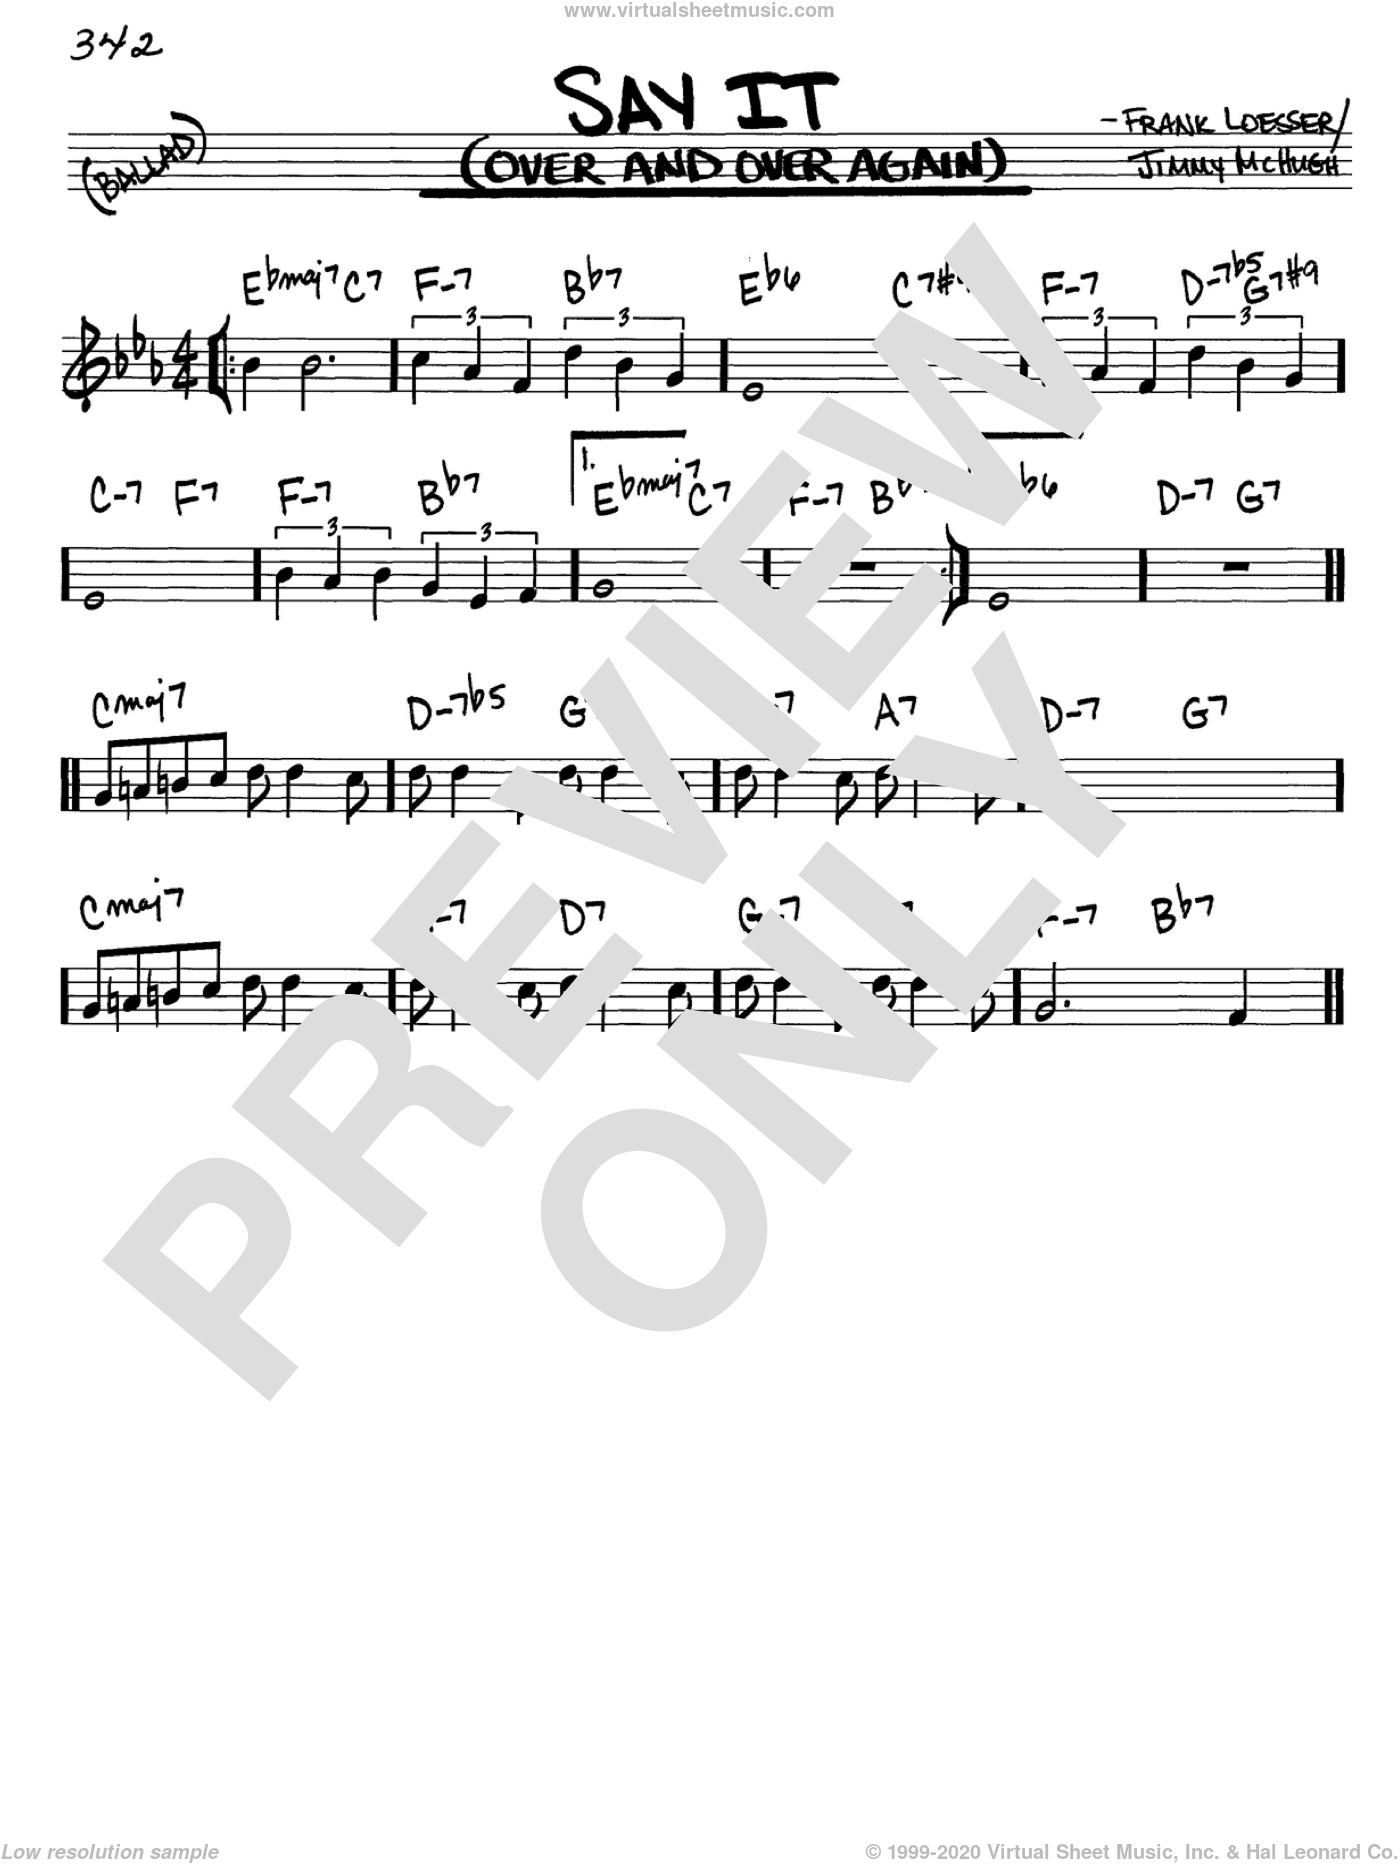 Say It (Over And Over Again) sheet music for voice and other instruments (in C) by Frank Loesser and Jimmy McHugh, intermediate skill level